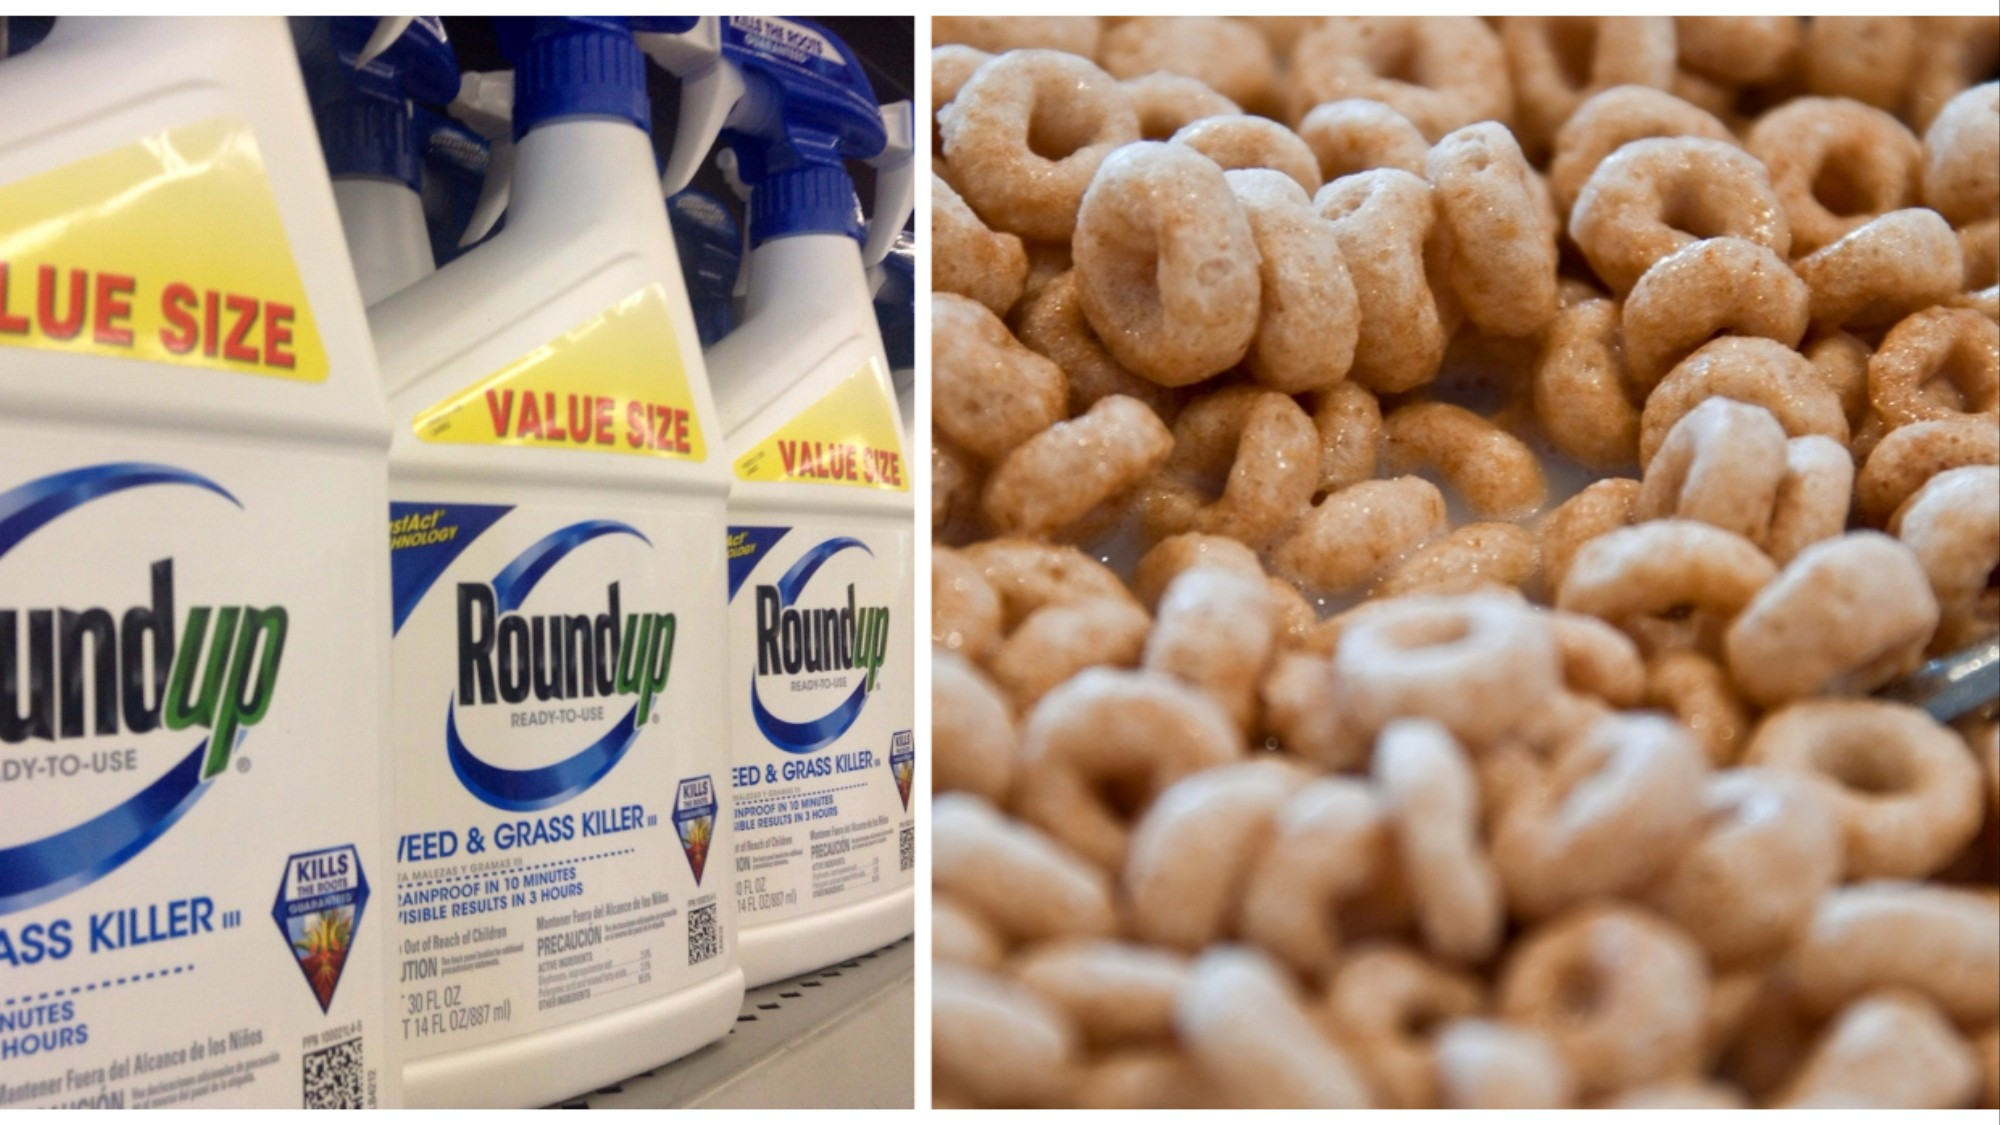 Well, This Sucks: Monsanto's Weed Killer Found in Cheerios